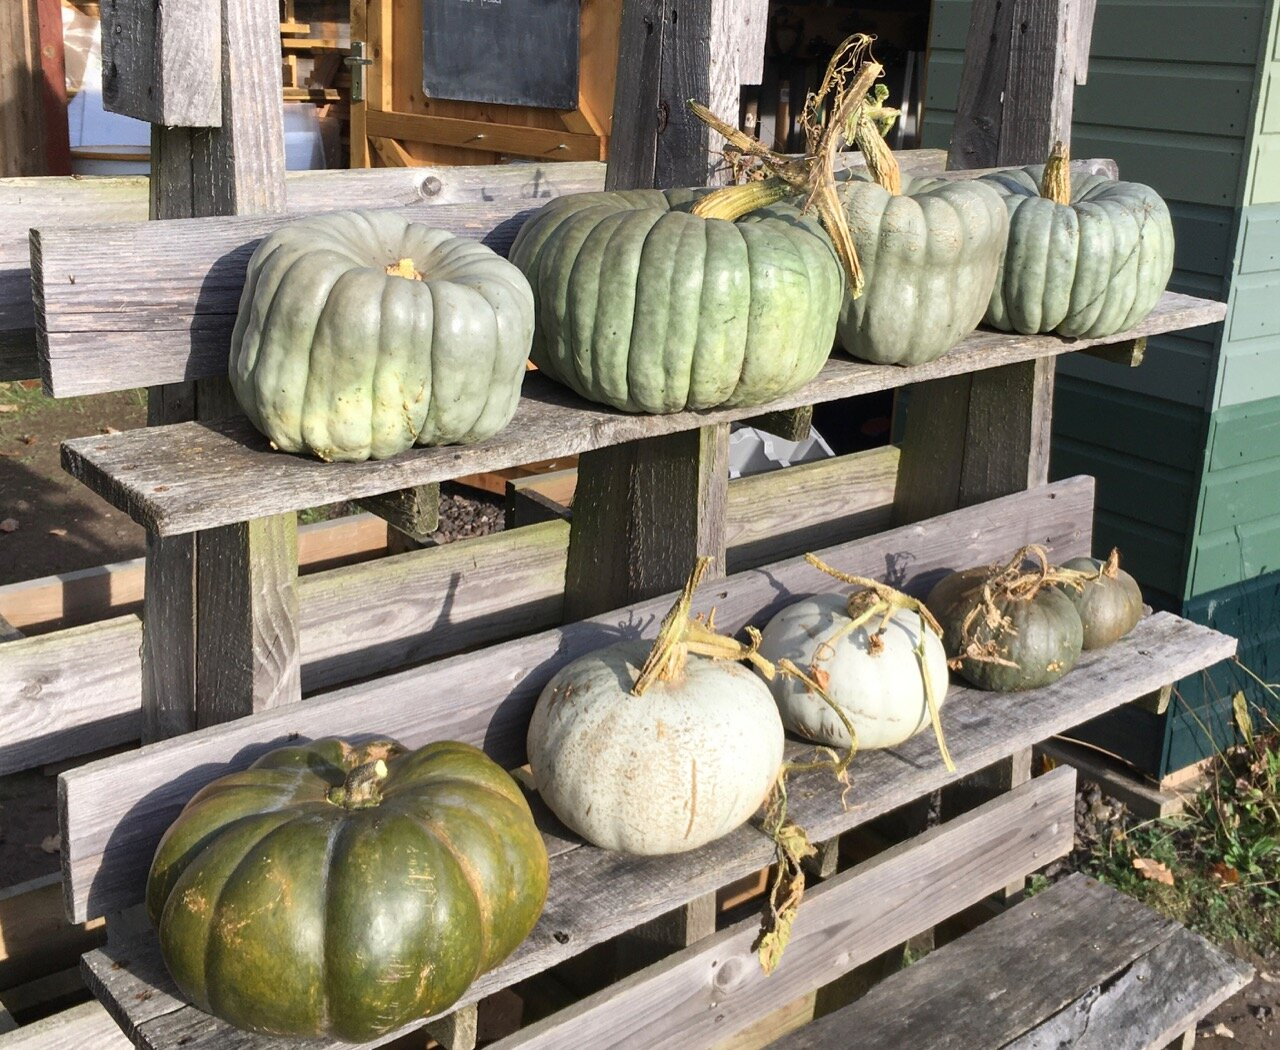 Most of our winter squash crop taking the air - they were getting a bit damp in the club hut. All selected for taste: Queensland Blue, Crown Prince, Musquee de Provence and (I think) Blu Kuri. They will be moved somewhere less damp and used for community eating over the next few months.